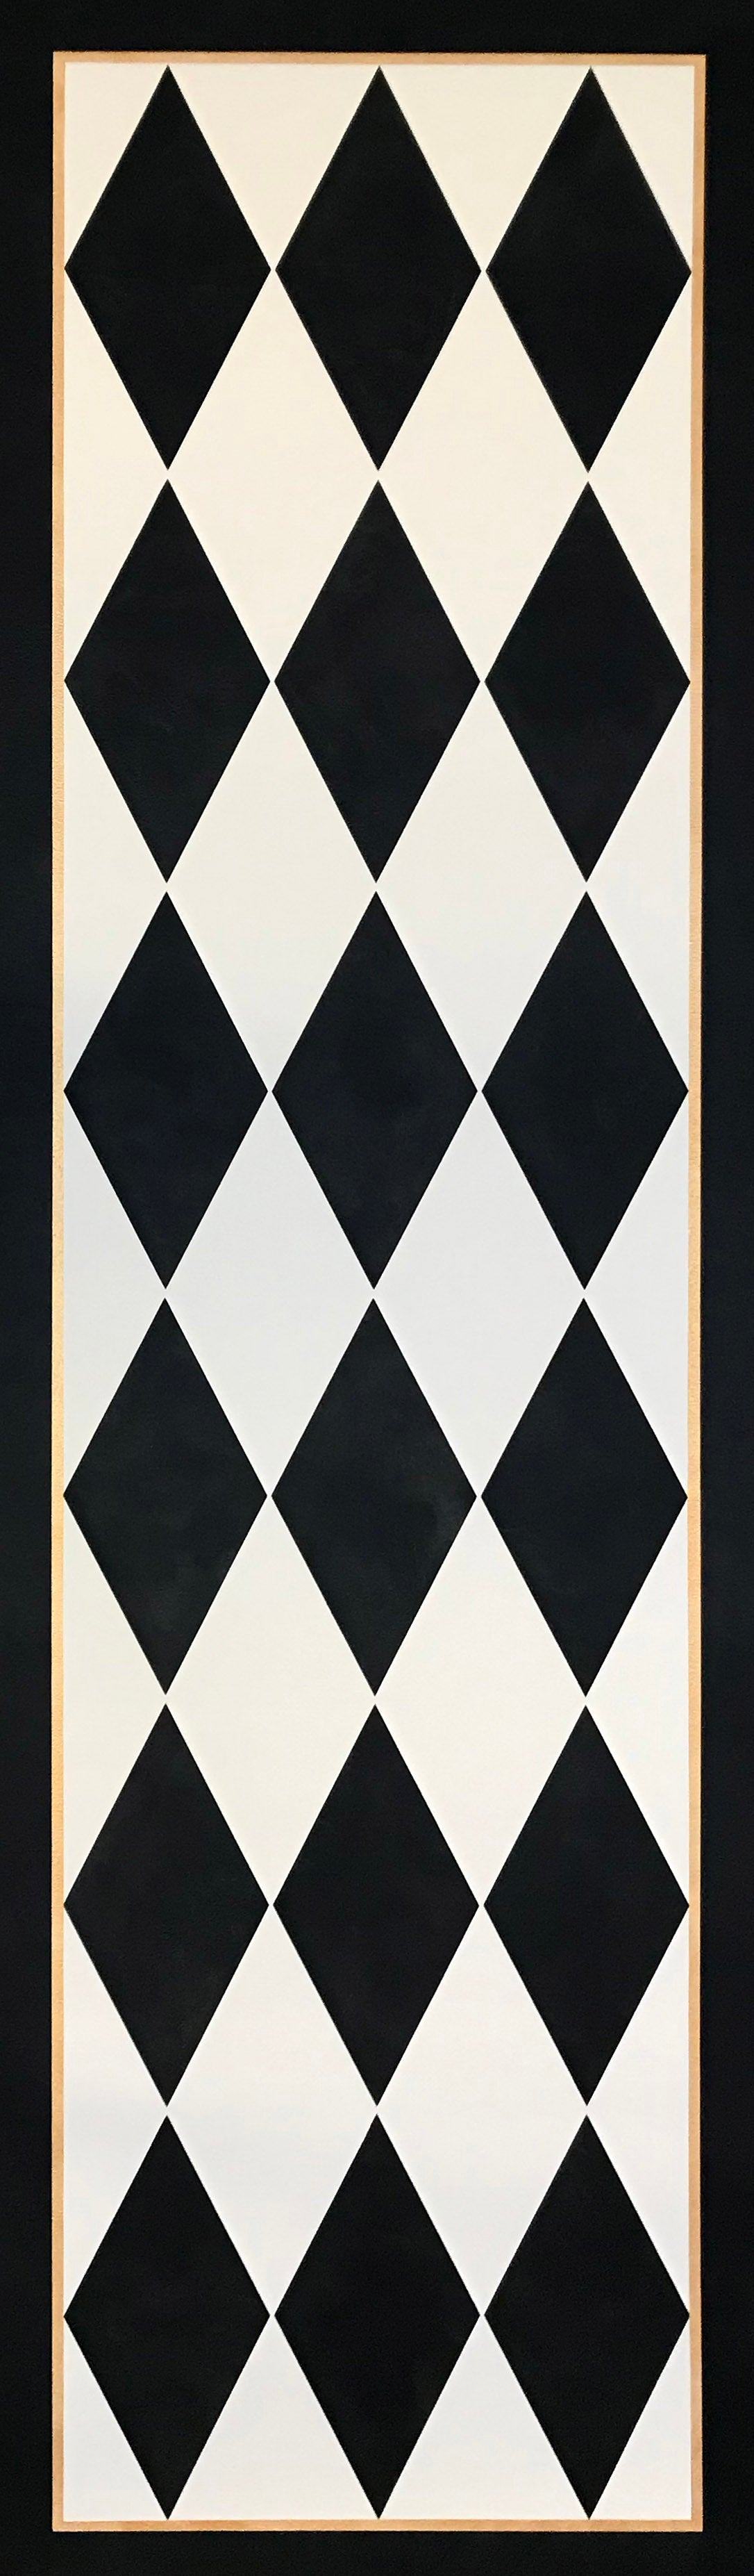 The full image of this traditional floorcloth which employs a classic harlequin pattern of elongated diamonds in cream and black.